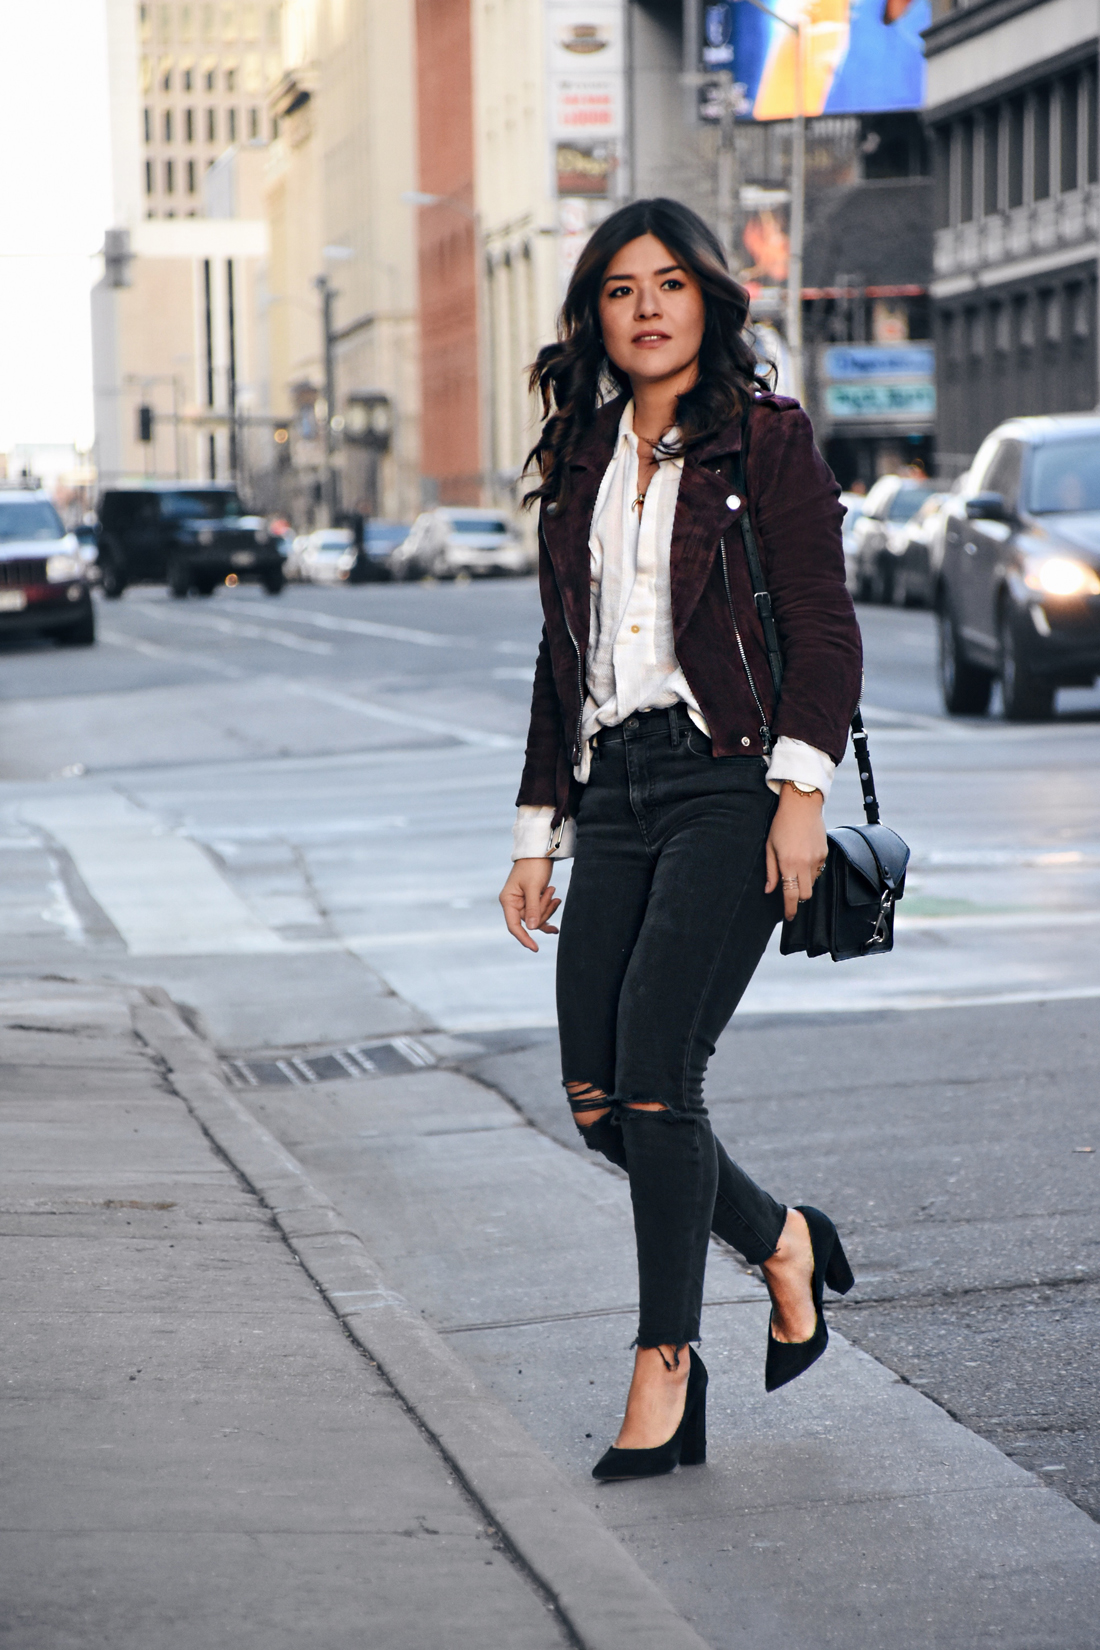 Carolina Hellal of Chic Talk wearing a Suede jacket, free people top, Madewell jeans, Rebecca Minkoff bag, and Sam Edelman shoes